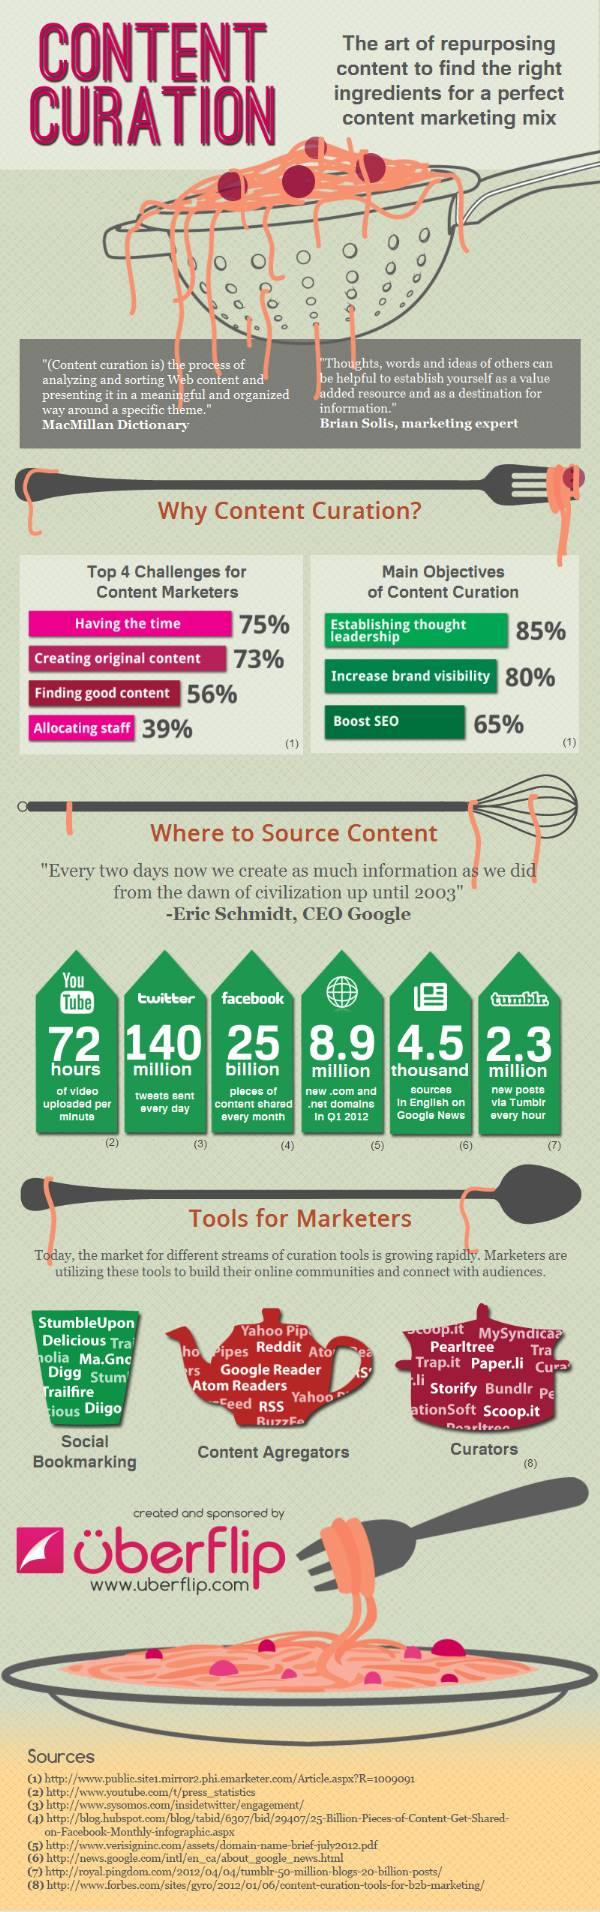 INFOGRAPHIC: Using Curation to Create the Perfect Content Marketing Mix